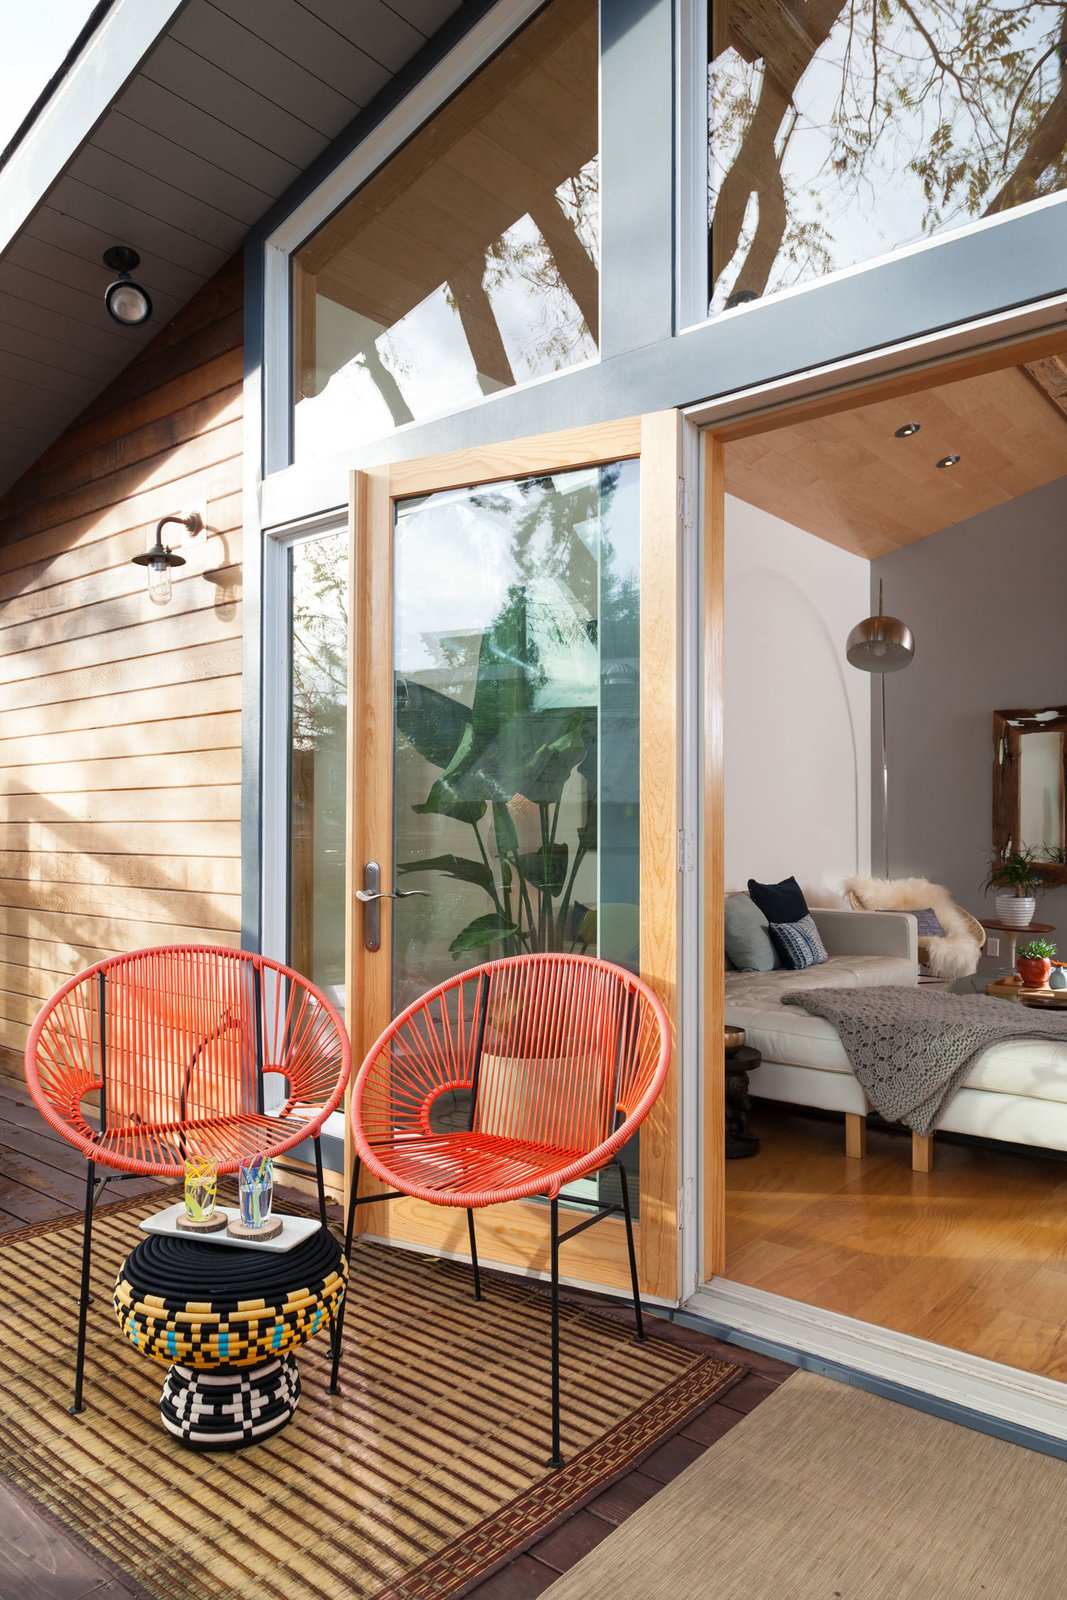 #seatingdesign #seating #chairs #outdoor #exterior #outside #bungalow #indoor-outdoor #Berkeley #California   100+ Best Modern Seating Designs by Dwell